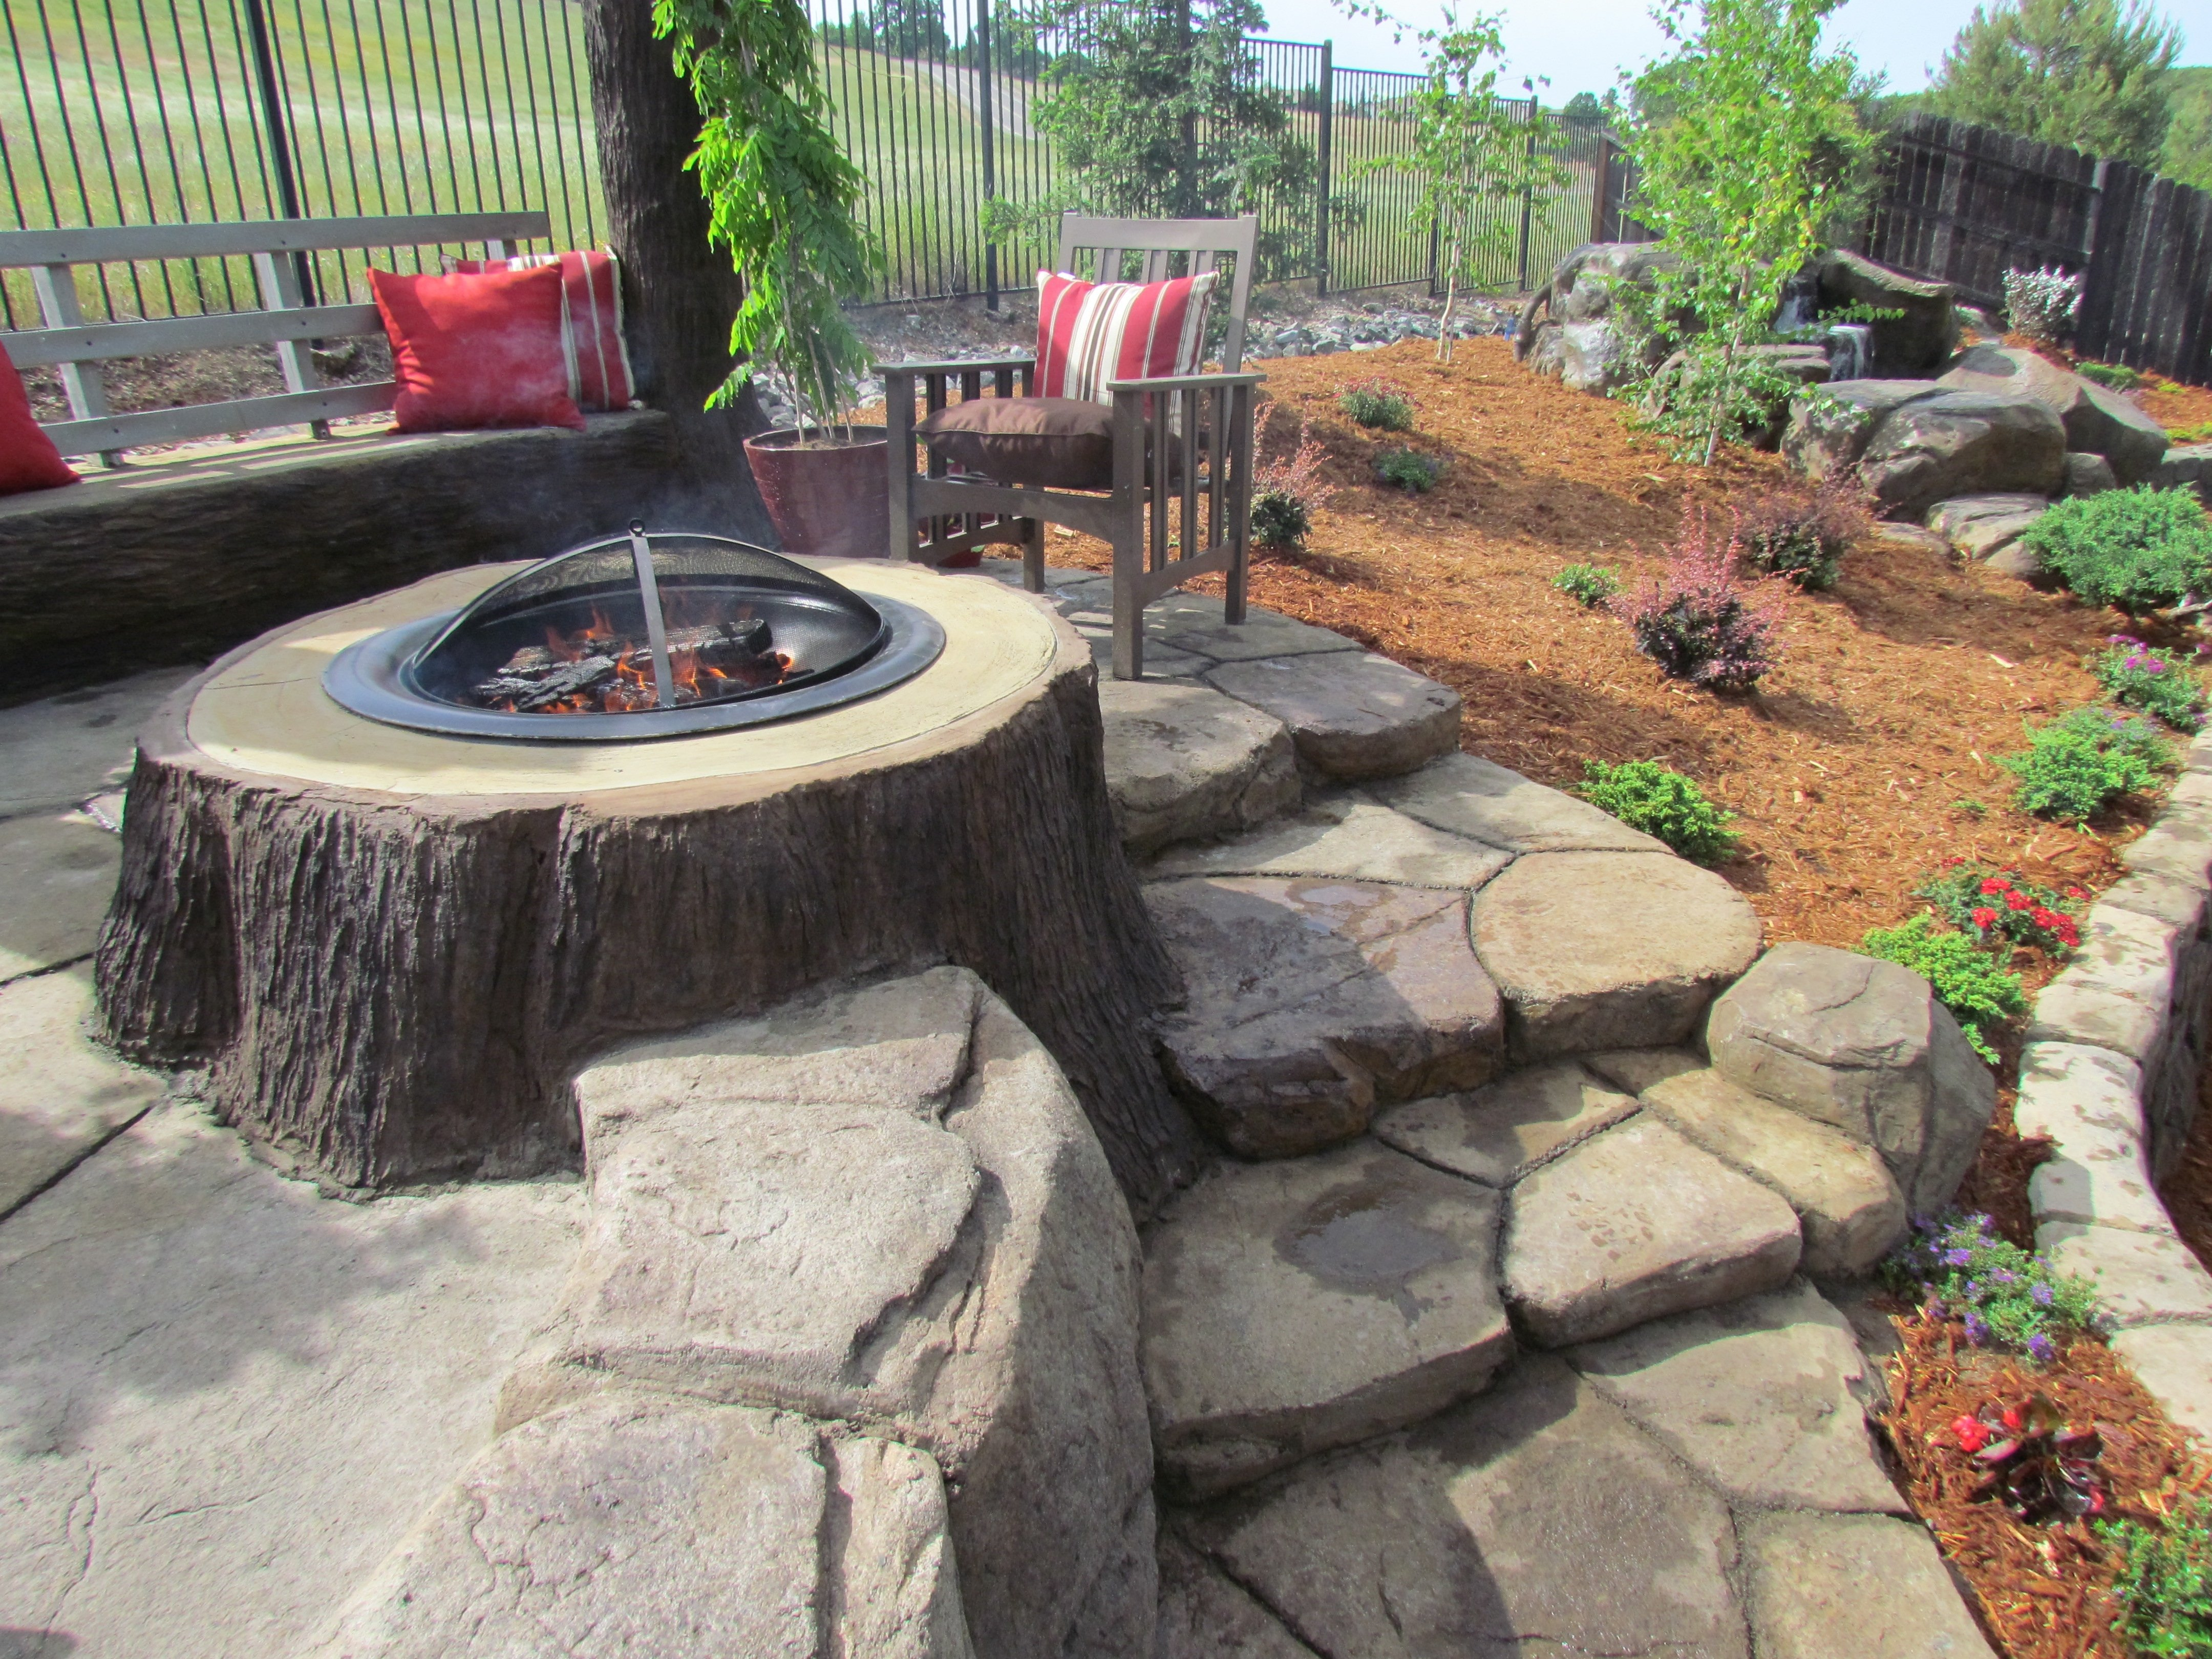 10 Spectacular Do It Yourself Fire Pit Ideas fresh awesome diy fire pit patio ideas 22799 do it yourself fire pit 2021